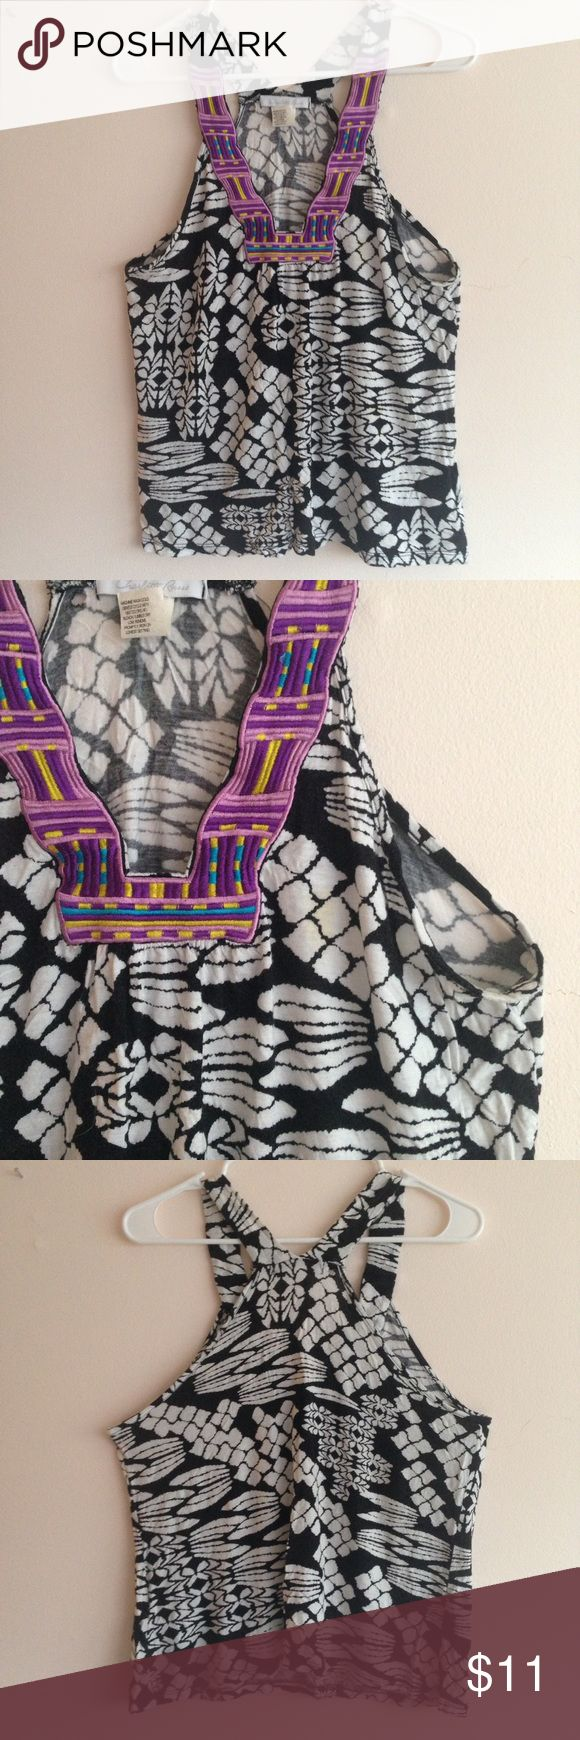 Abstract Pattern Top w/ Embroidered Collar Your OOTD will stand out with this vibrant tank complete with statement collar.  Length: approx. 21 inches  Width: approx. 18 inches at chest  Material: 95% Rayon, 5% Spandex EUC  Empire waist, half zipper on side   $5 off your 1st purchase! Use promo code NVMES. Purchase doesn't have to be from my closet. Charlotte Russe Tops Tank Tops